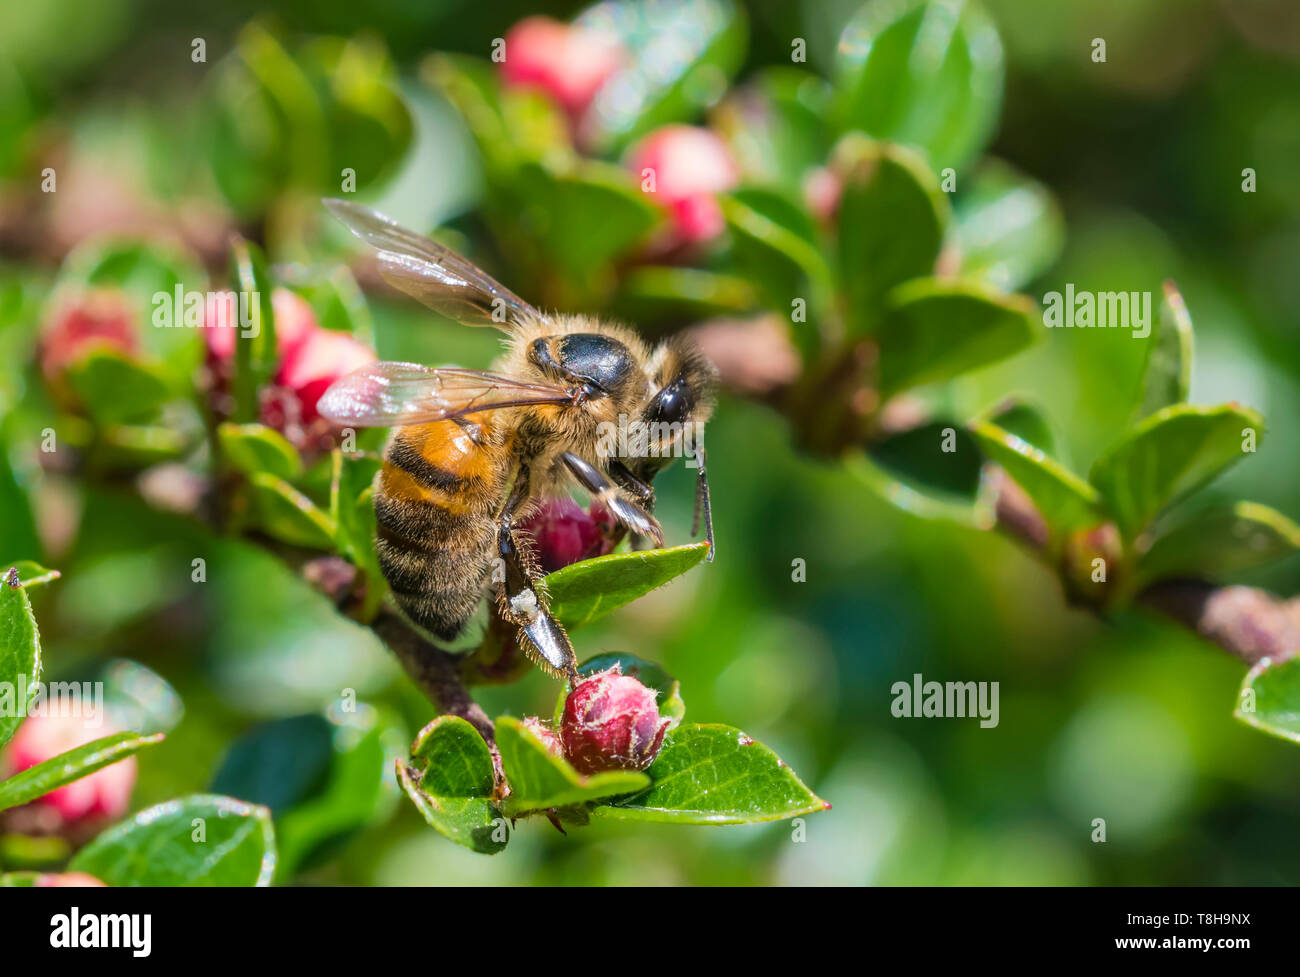 Western Honey Bee (Apis mellifera), AKA European Honey Bee, on a plant with red buds in Spring (May) in West Sussex, England, UK. - Stock Image